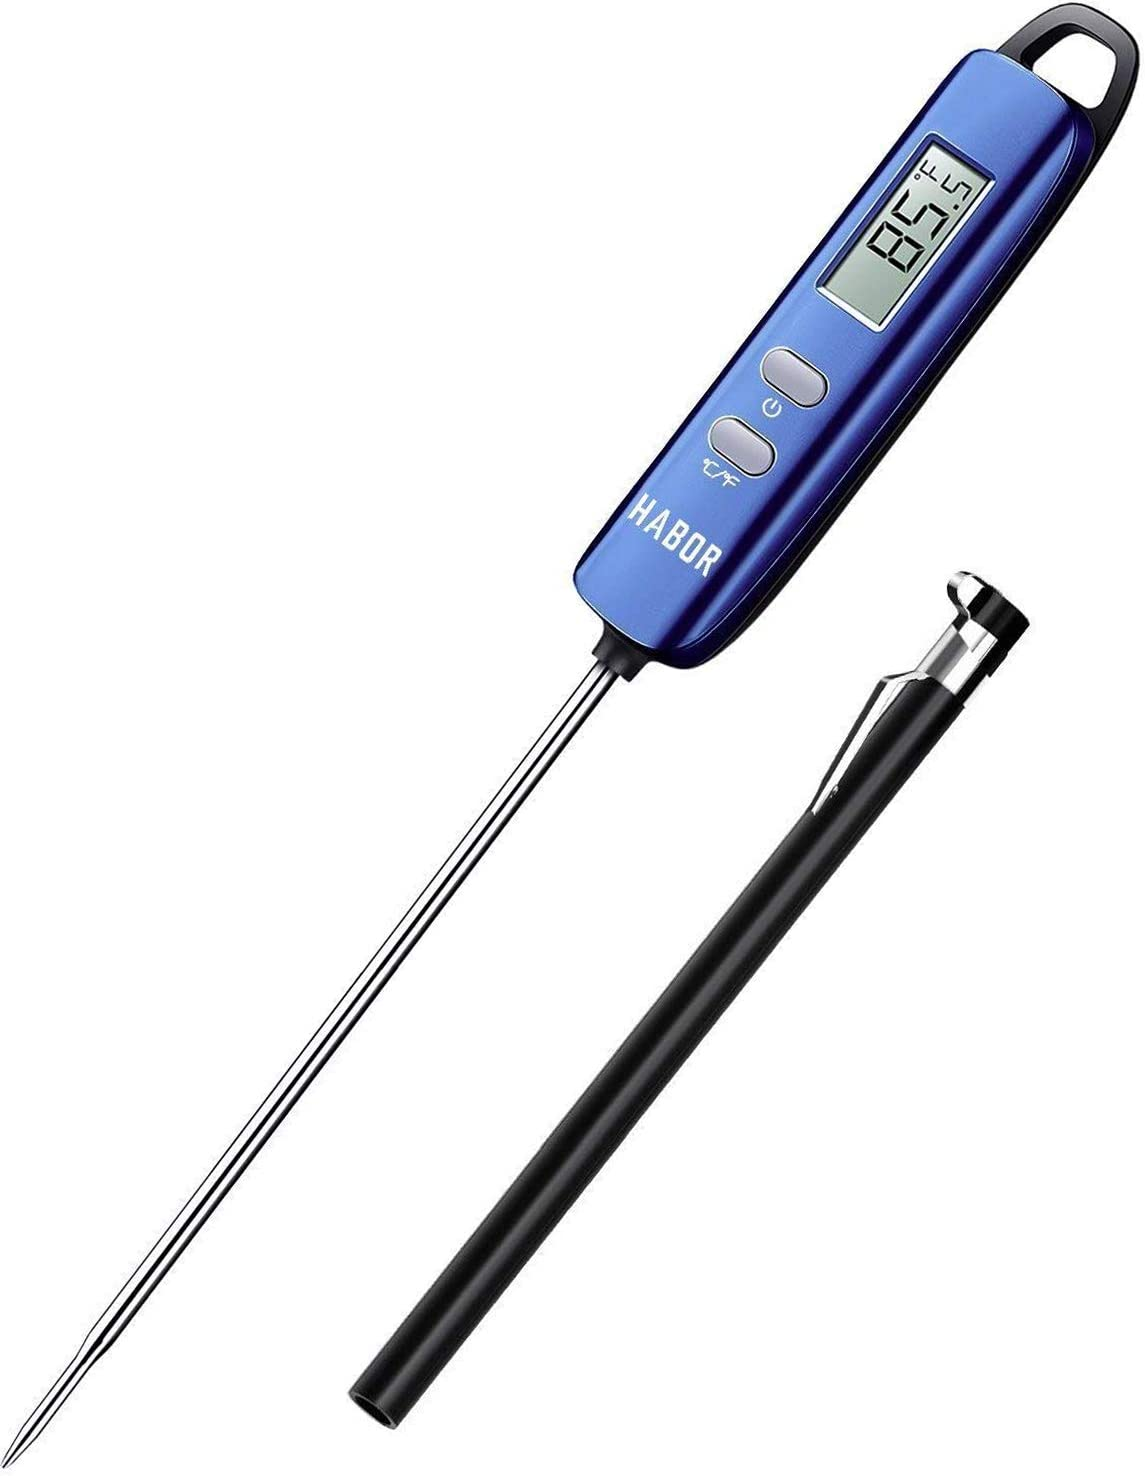 Habor 022 Meat, Instant Read Digital Cooking, Candy Thermometer with Super Long Probe for Kitchen BBQ Grill Smoker, Standard, Navy Blue